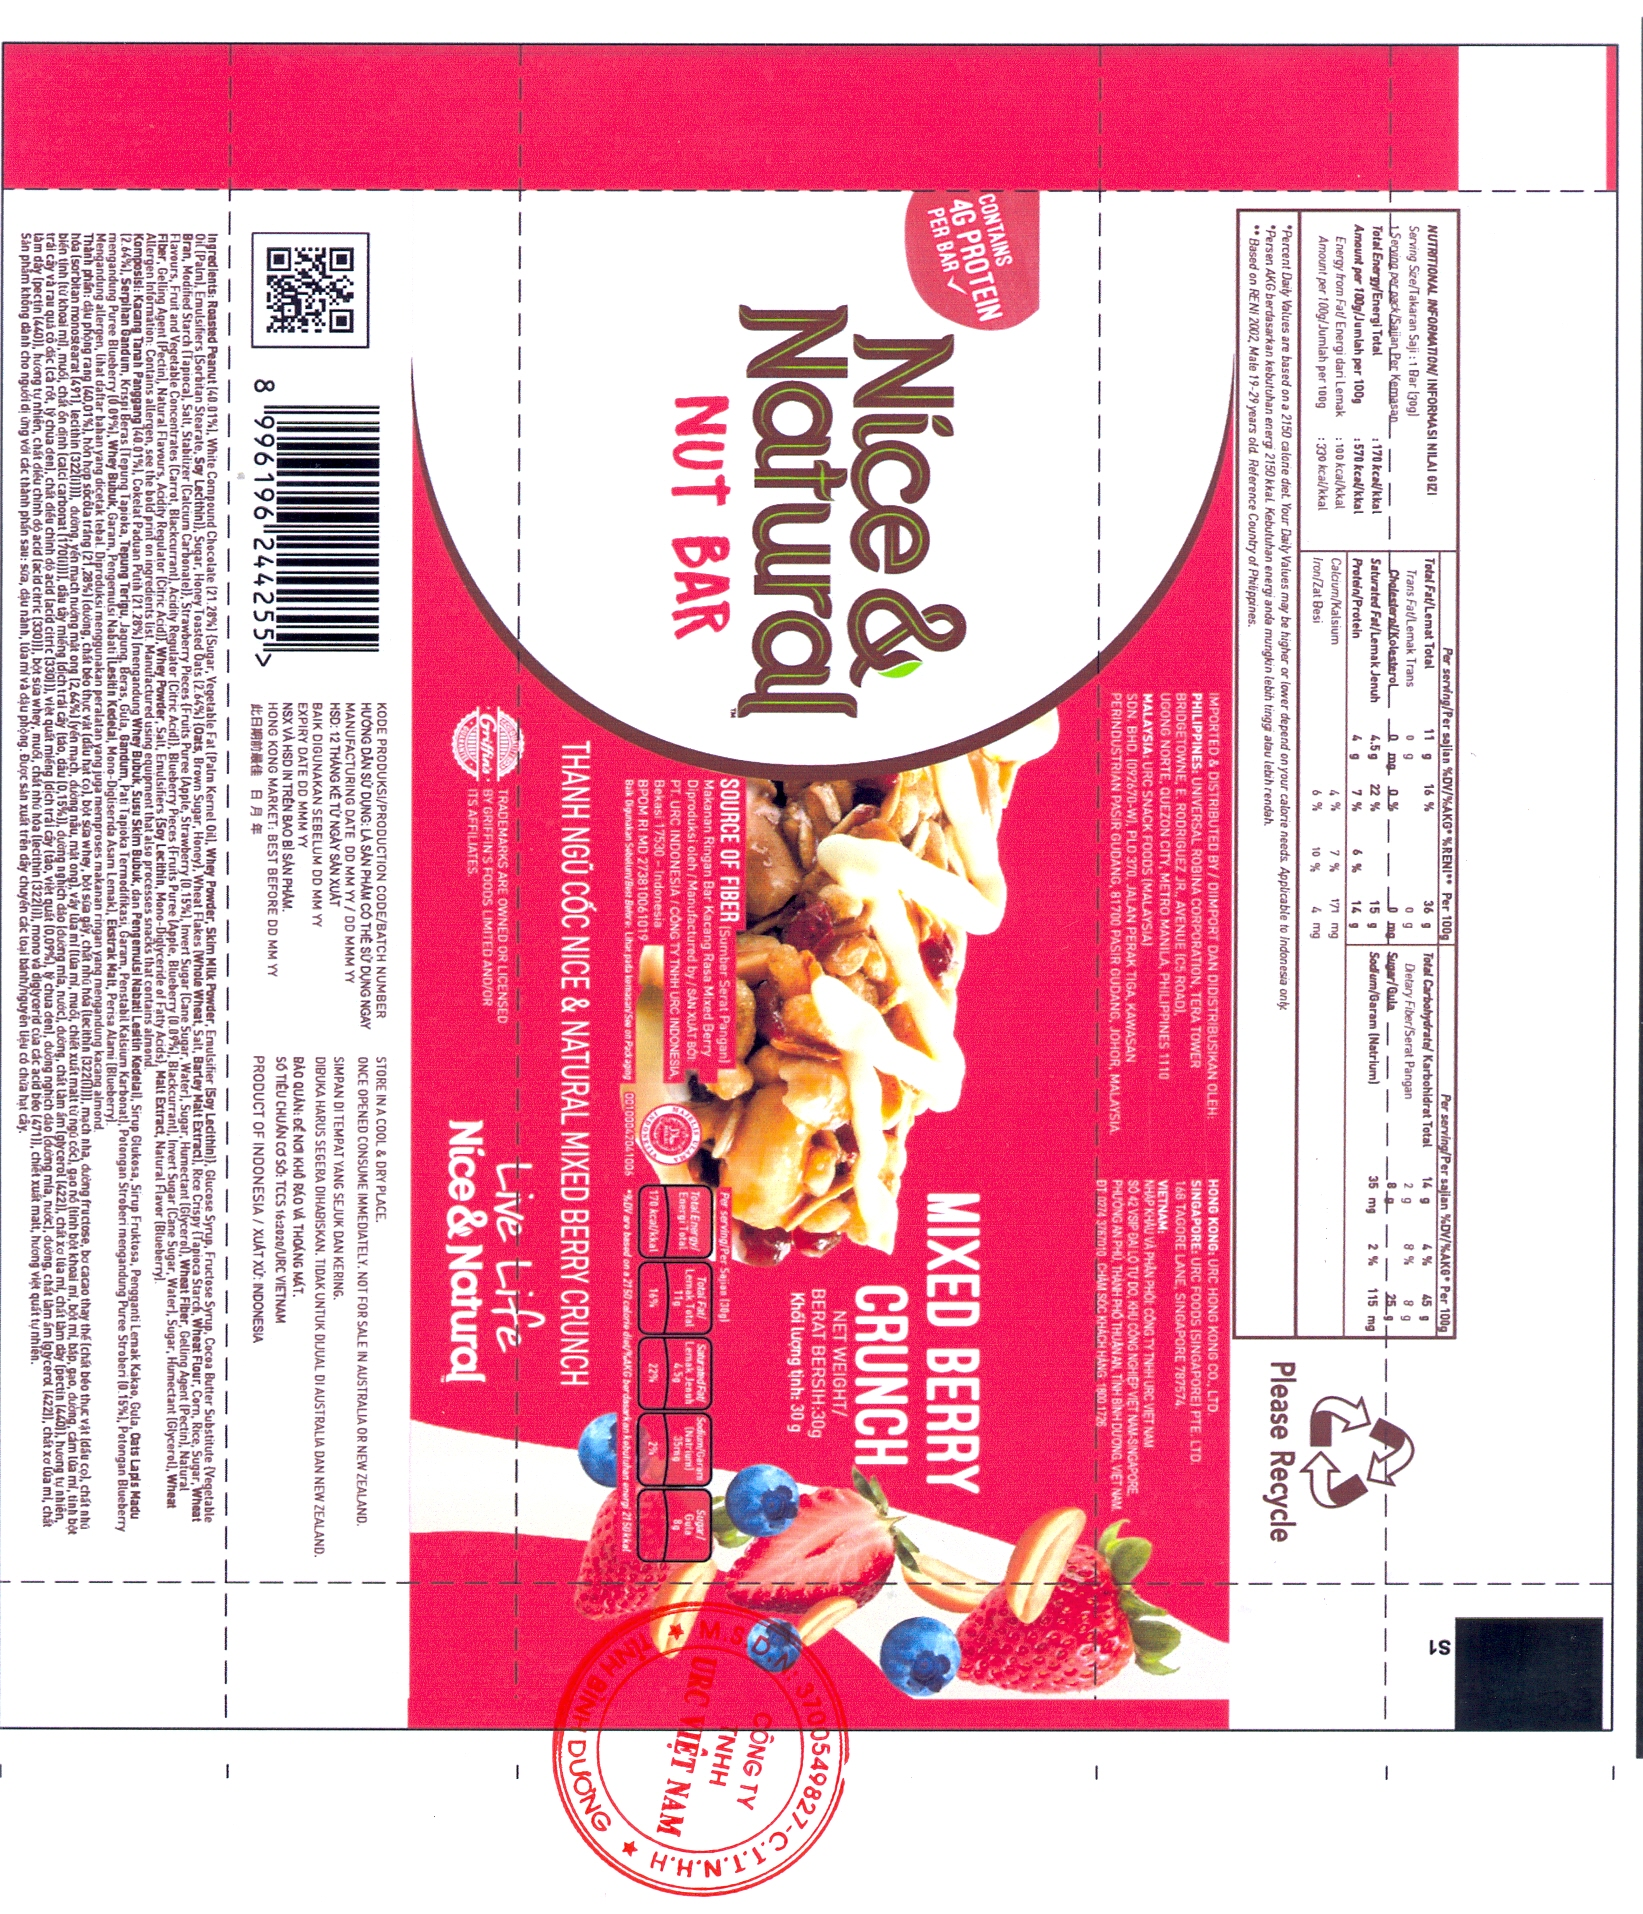 PRODUCT ANNOUNCEMENT NICE & NATURAL NUT BAR MIXED BERRY CRUNCH